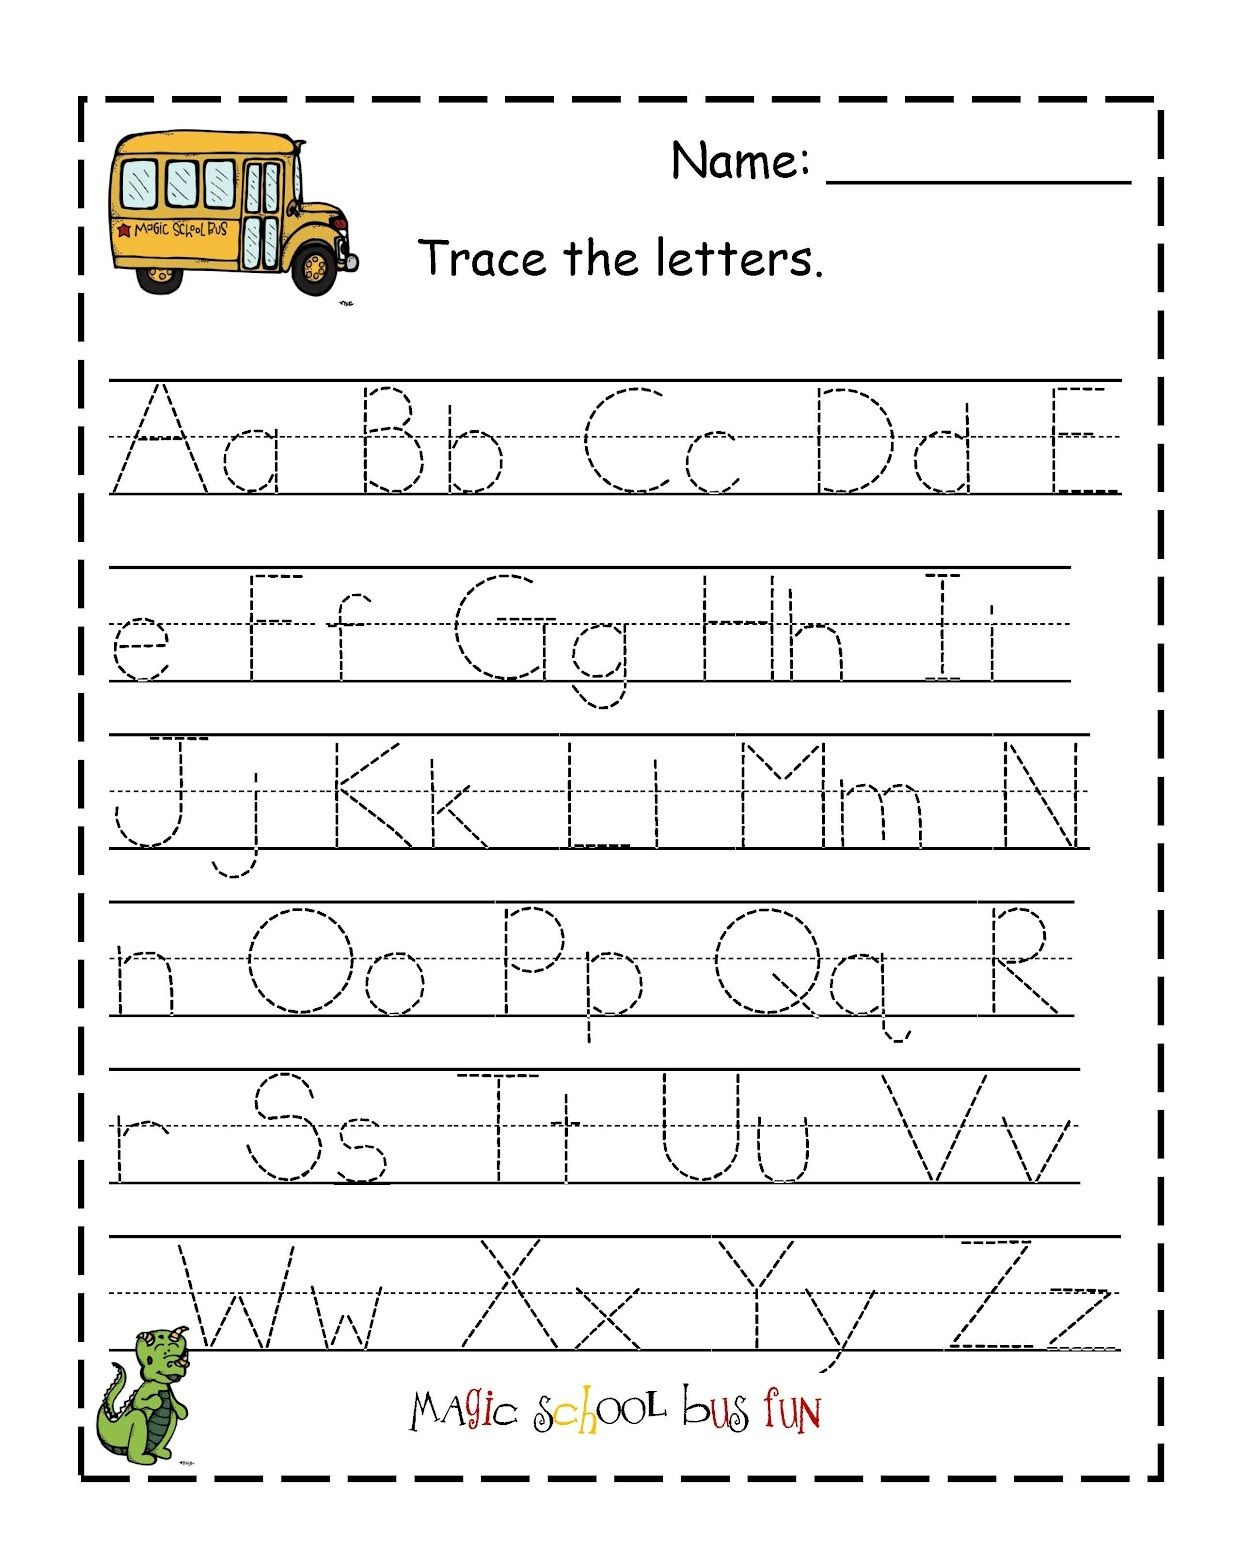 Traceable Letter Worksheets To Print | Alphabet A with Alphabet Worksheets Print